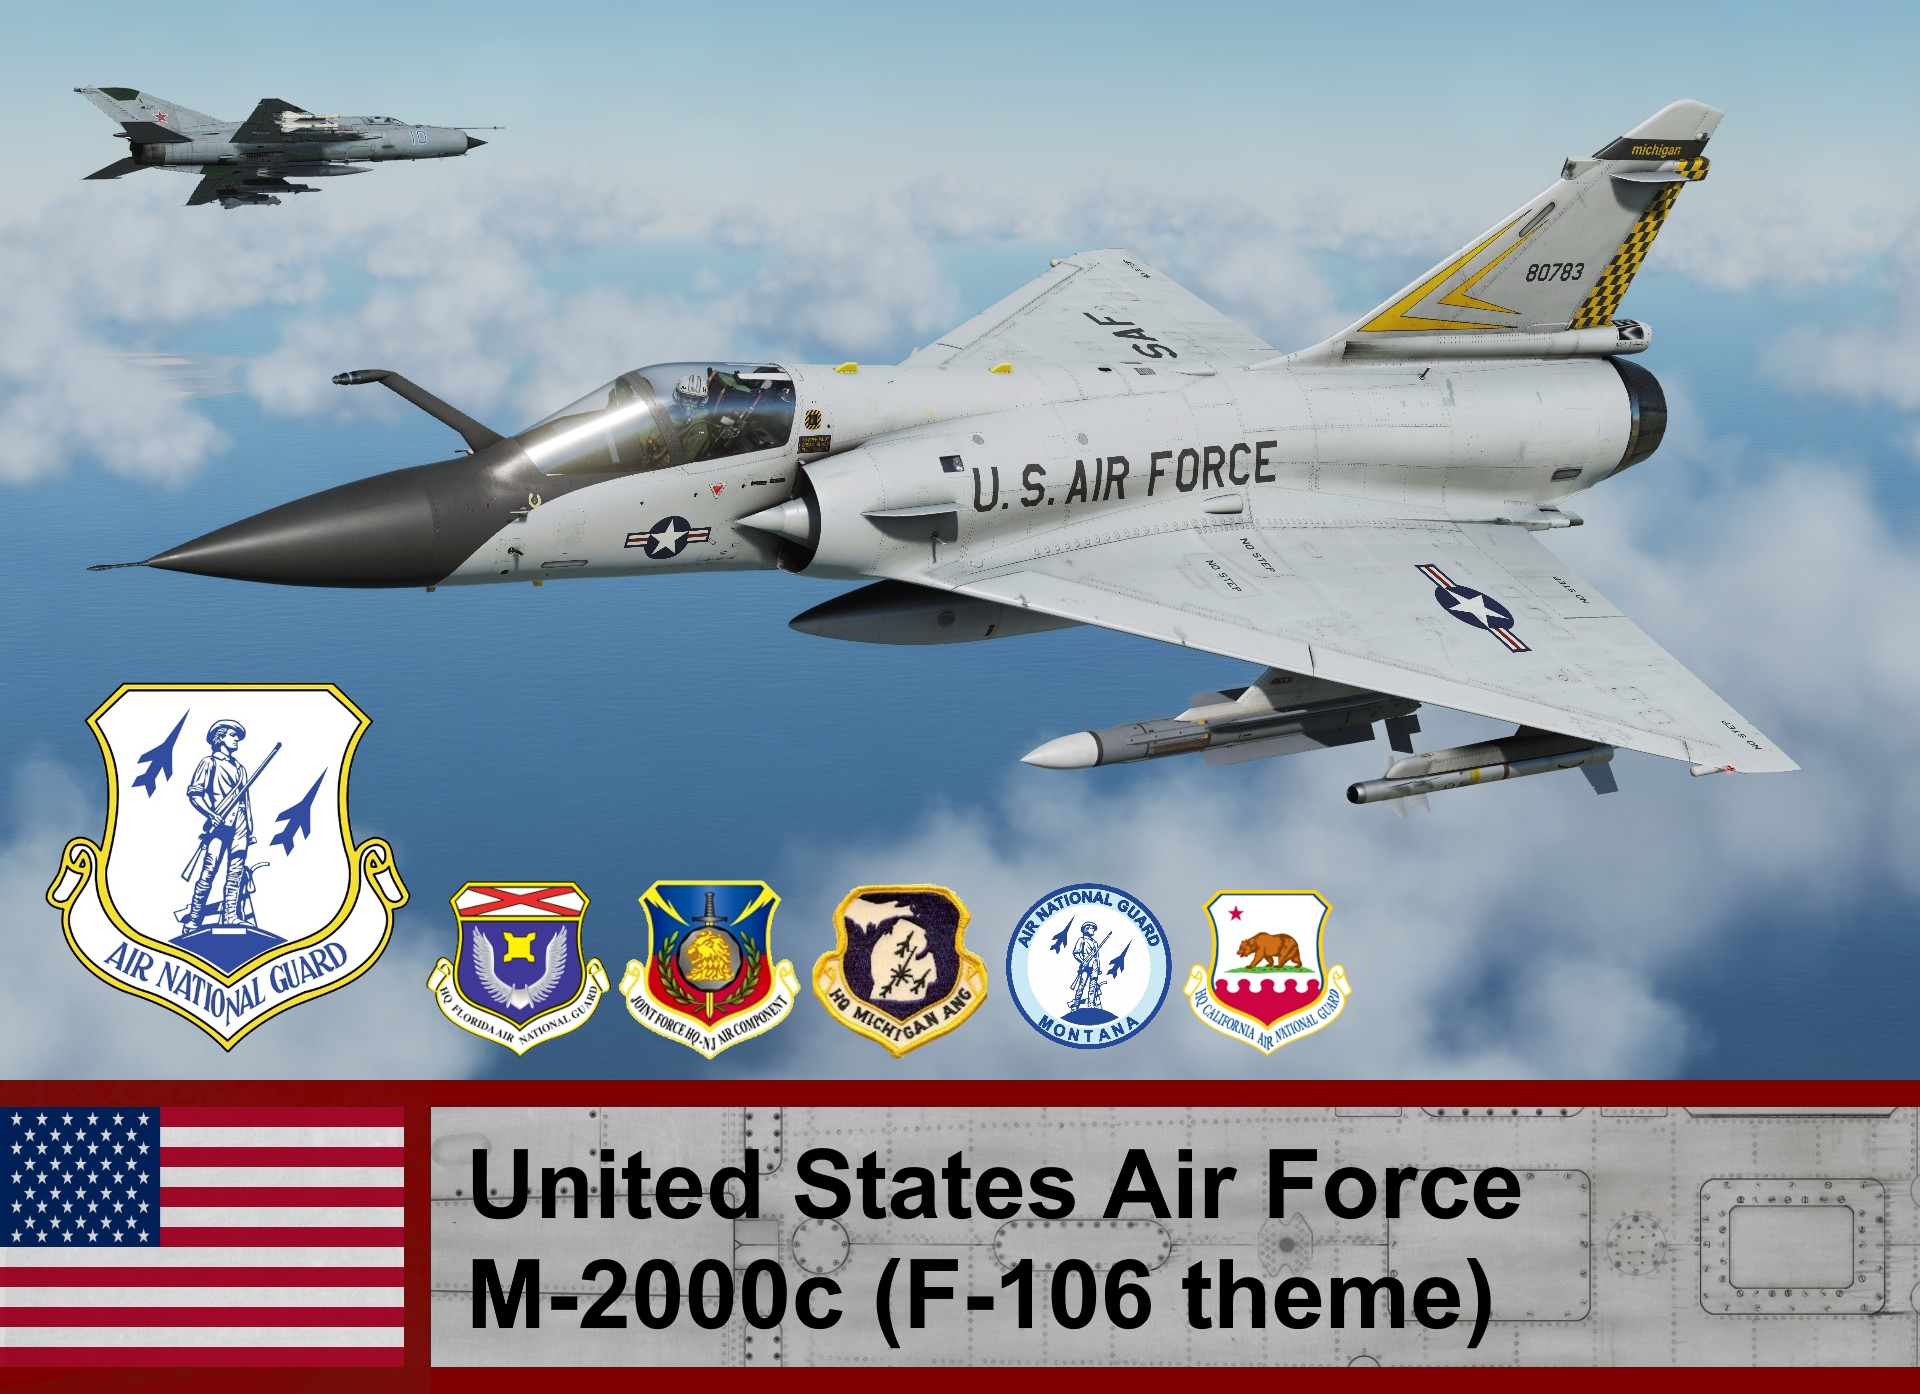 United States Air Force Mirage-2000C / F-106 Delta Dart theme (Fictional)